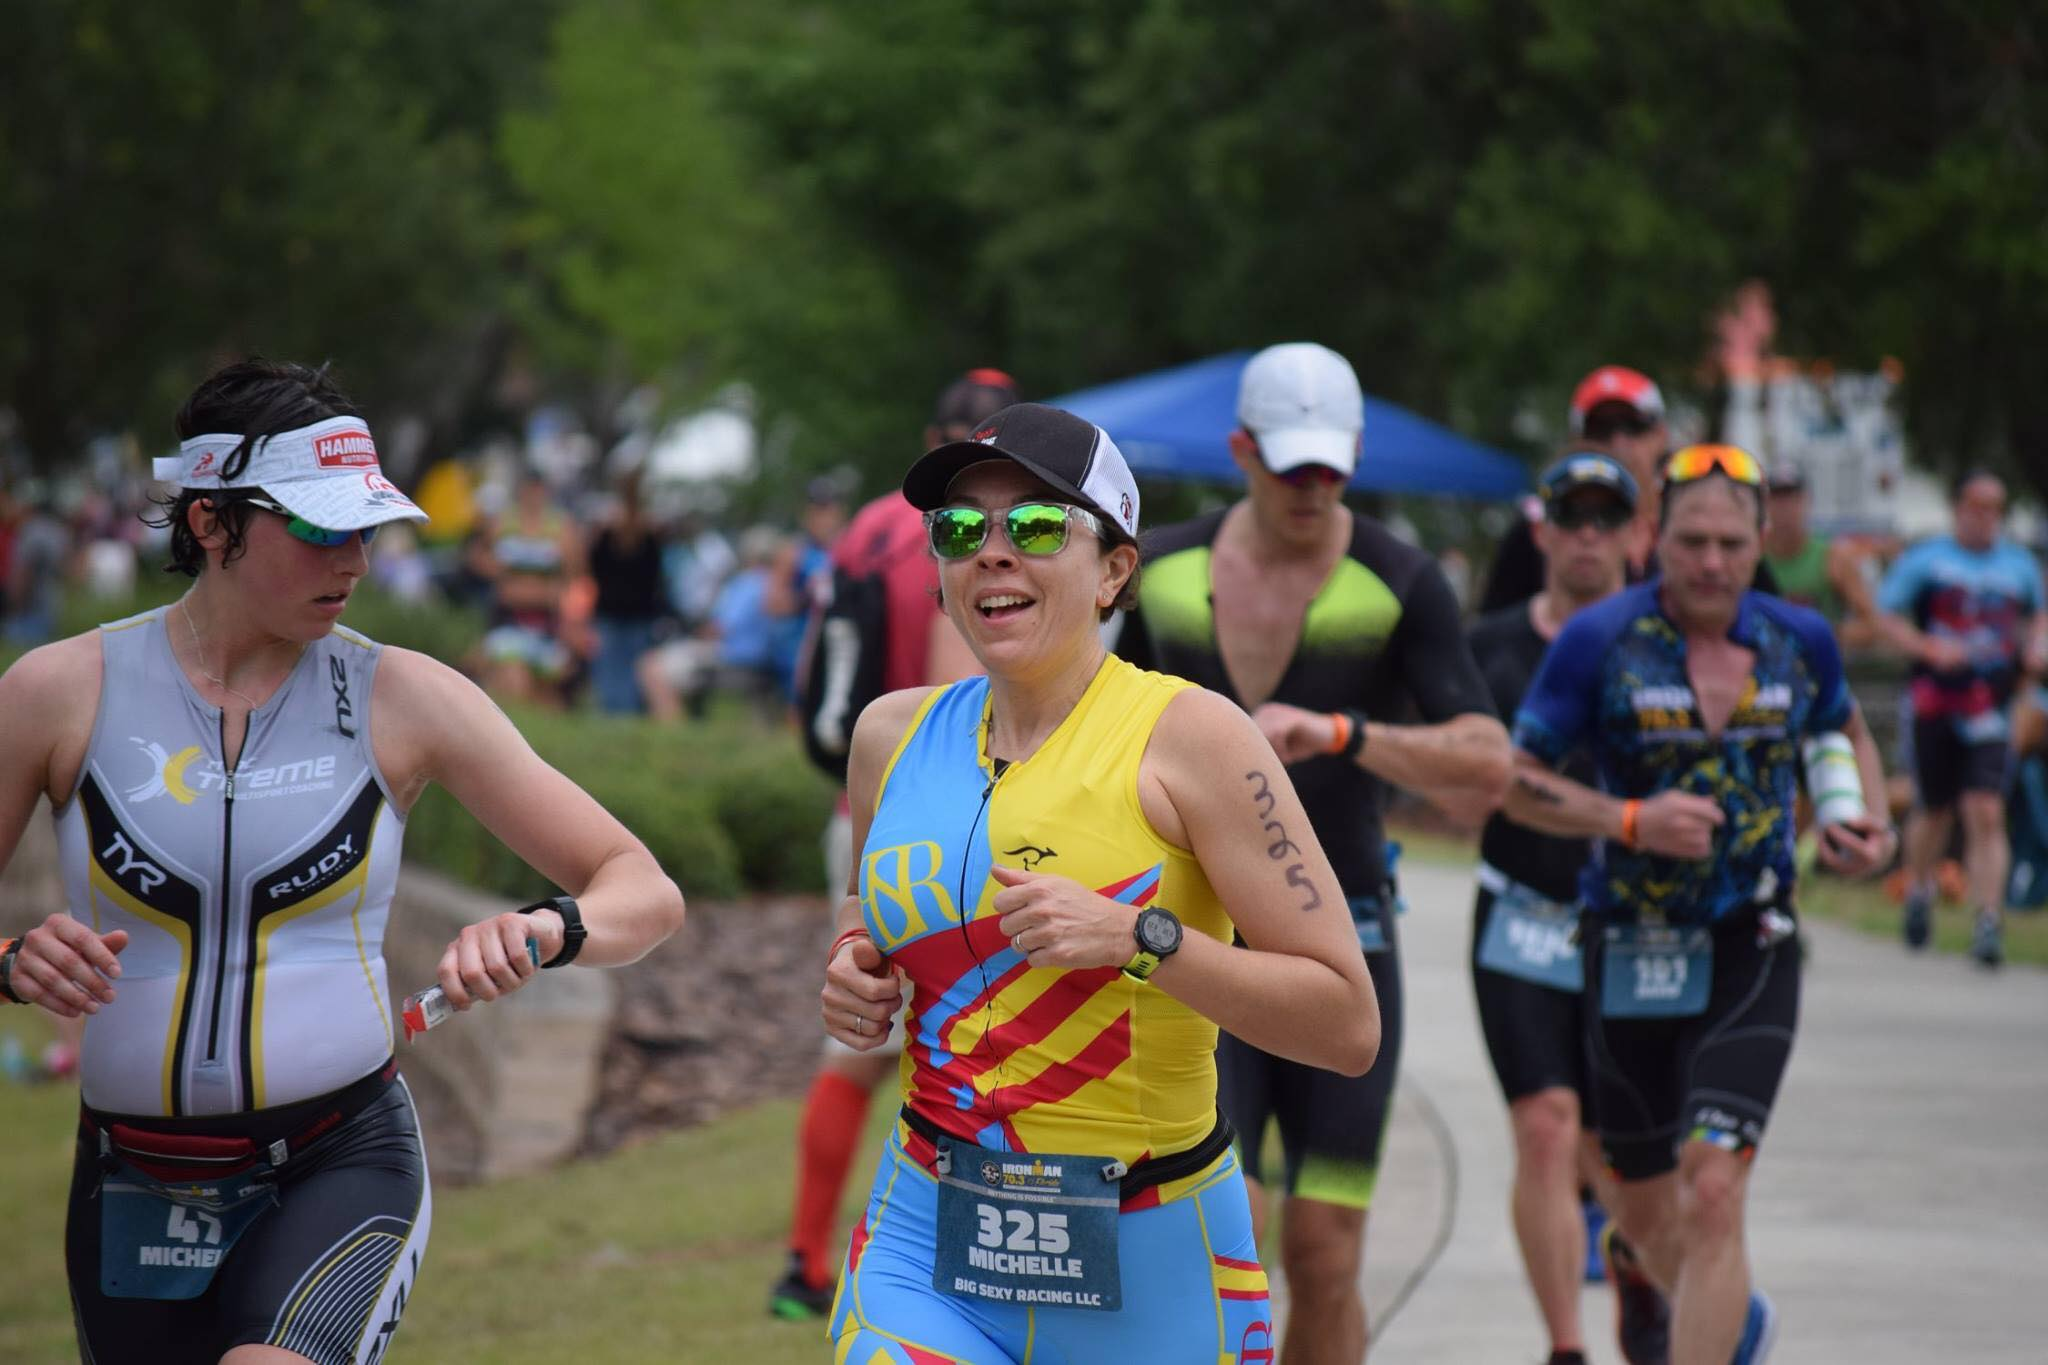 Coach_Terry_Wilson_Michelle_Reed_Ironman_Florida_Haines_City_70.3_Coaching.jpg